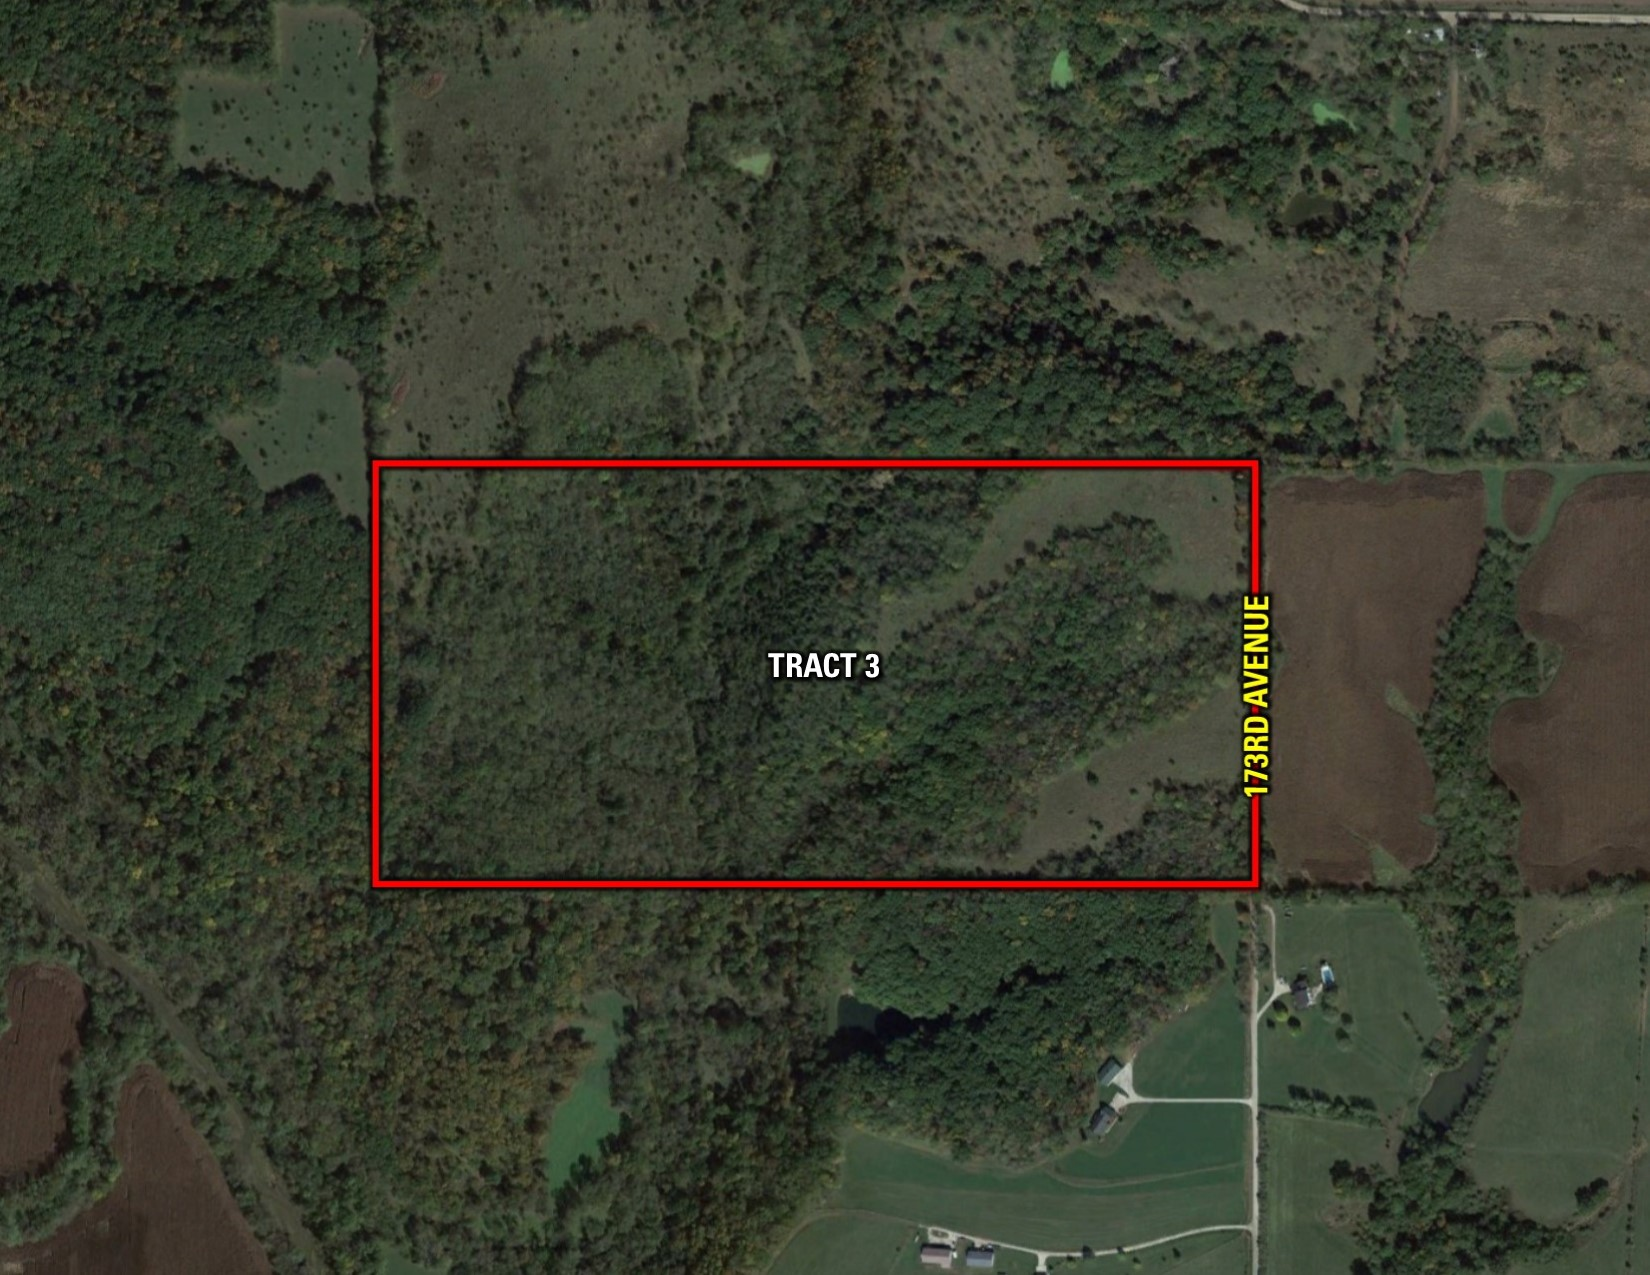 Warren County Auction - Tract 2 - Google 1